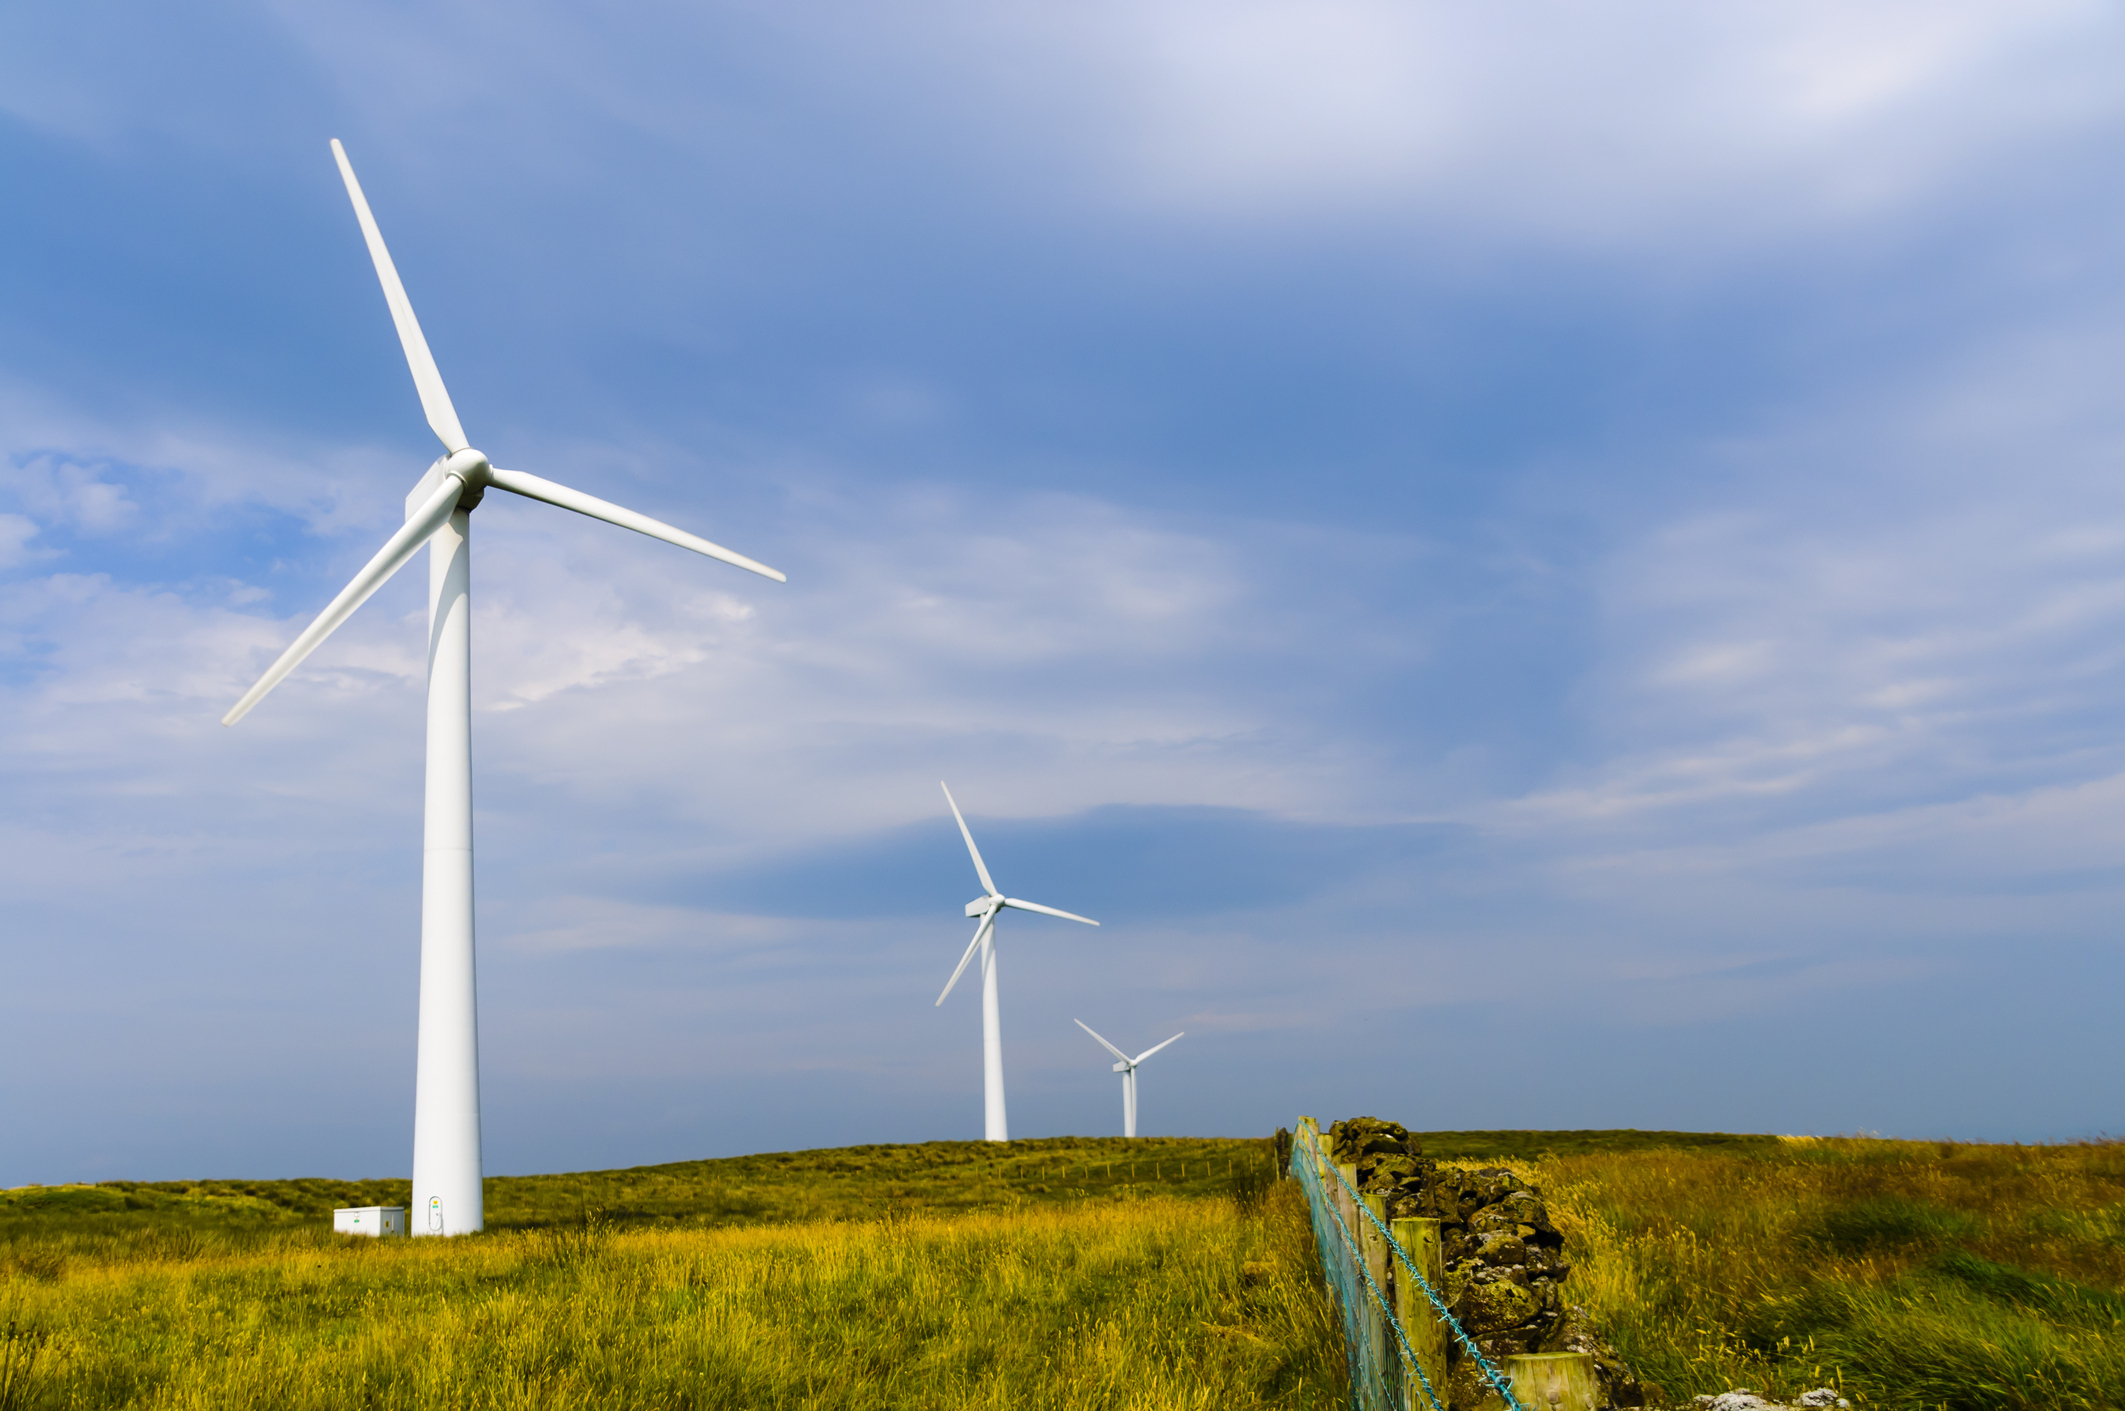 Wind turbines in Scotland are set to increase in size